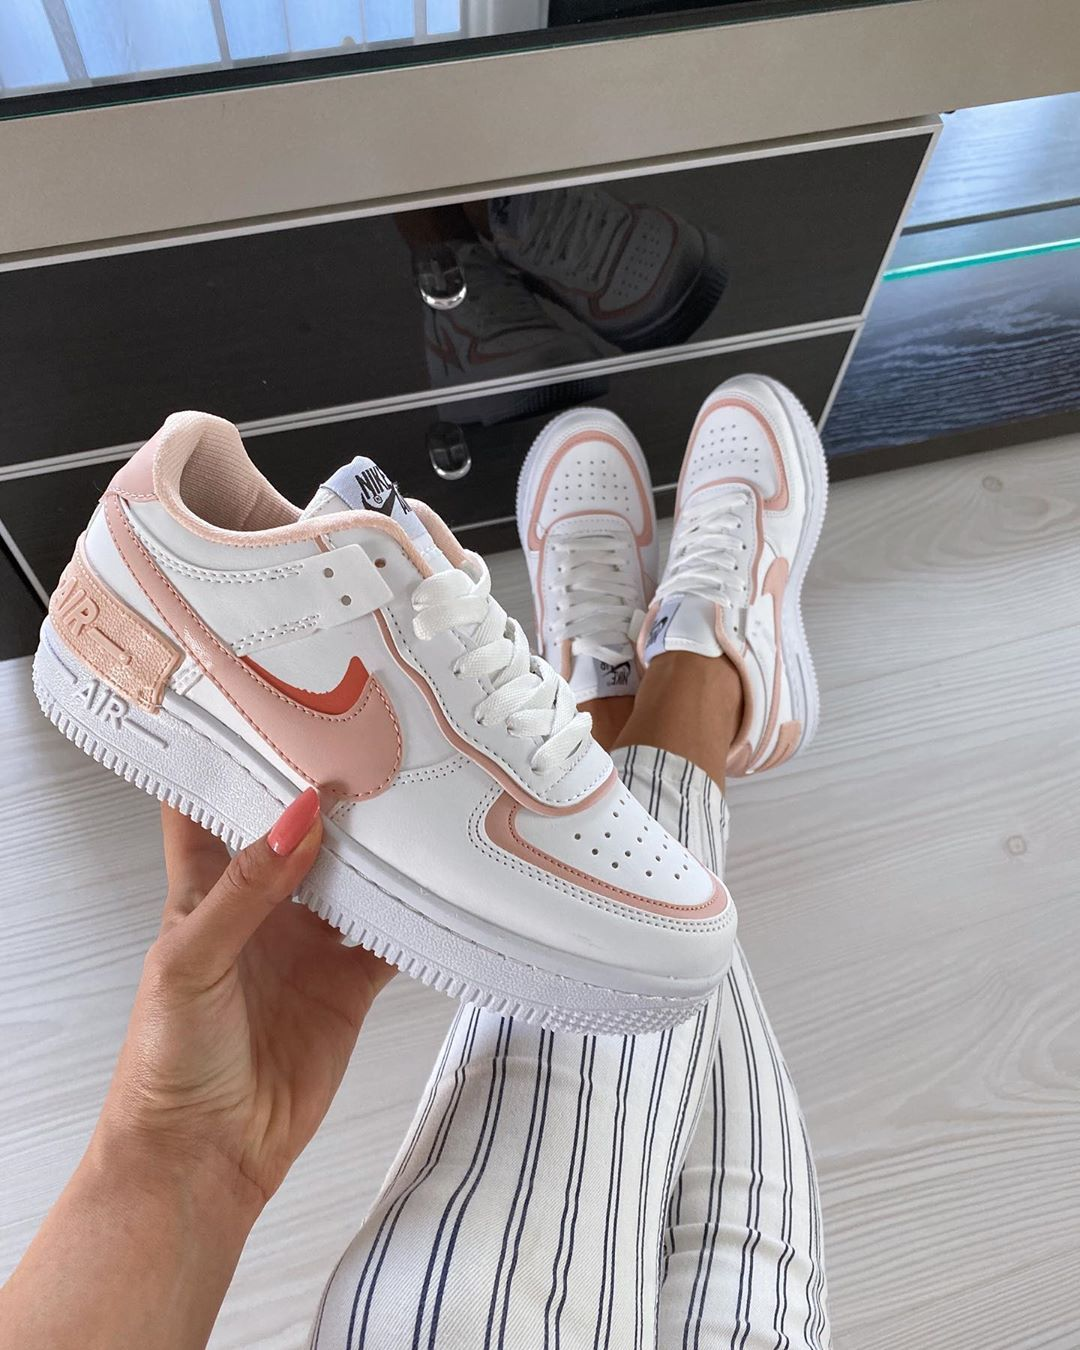 Porosit Patika Online On Instagram New Color Platform Sneakers Nike Air Force Sneaker Shoes